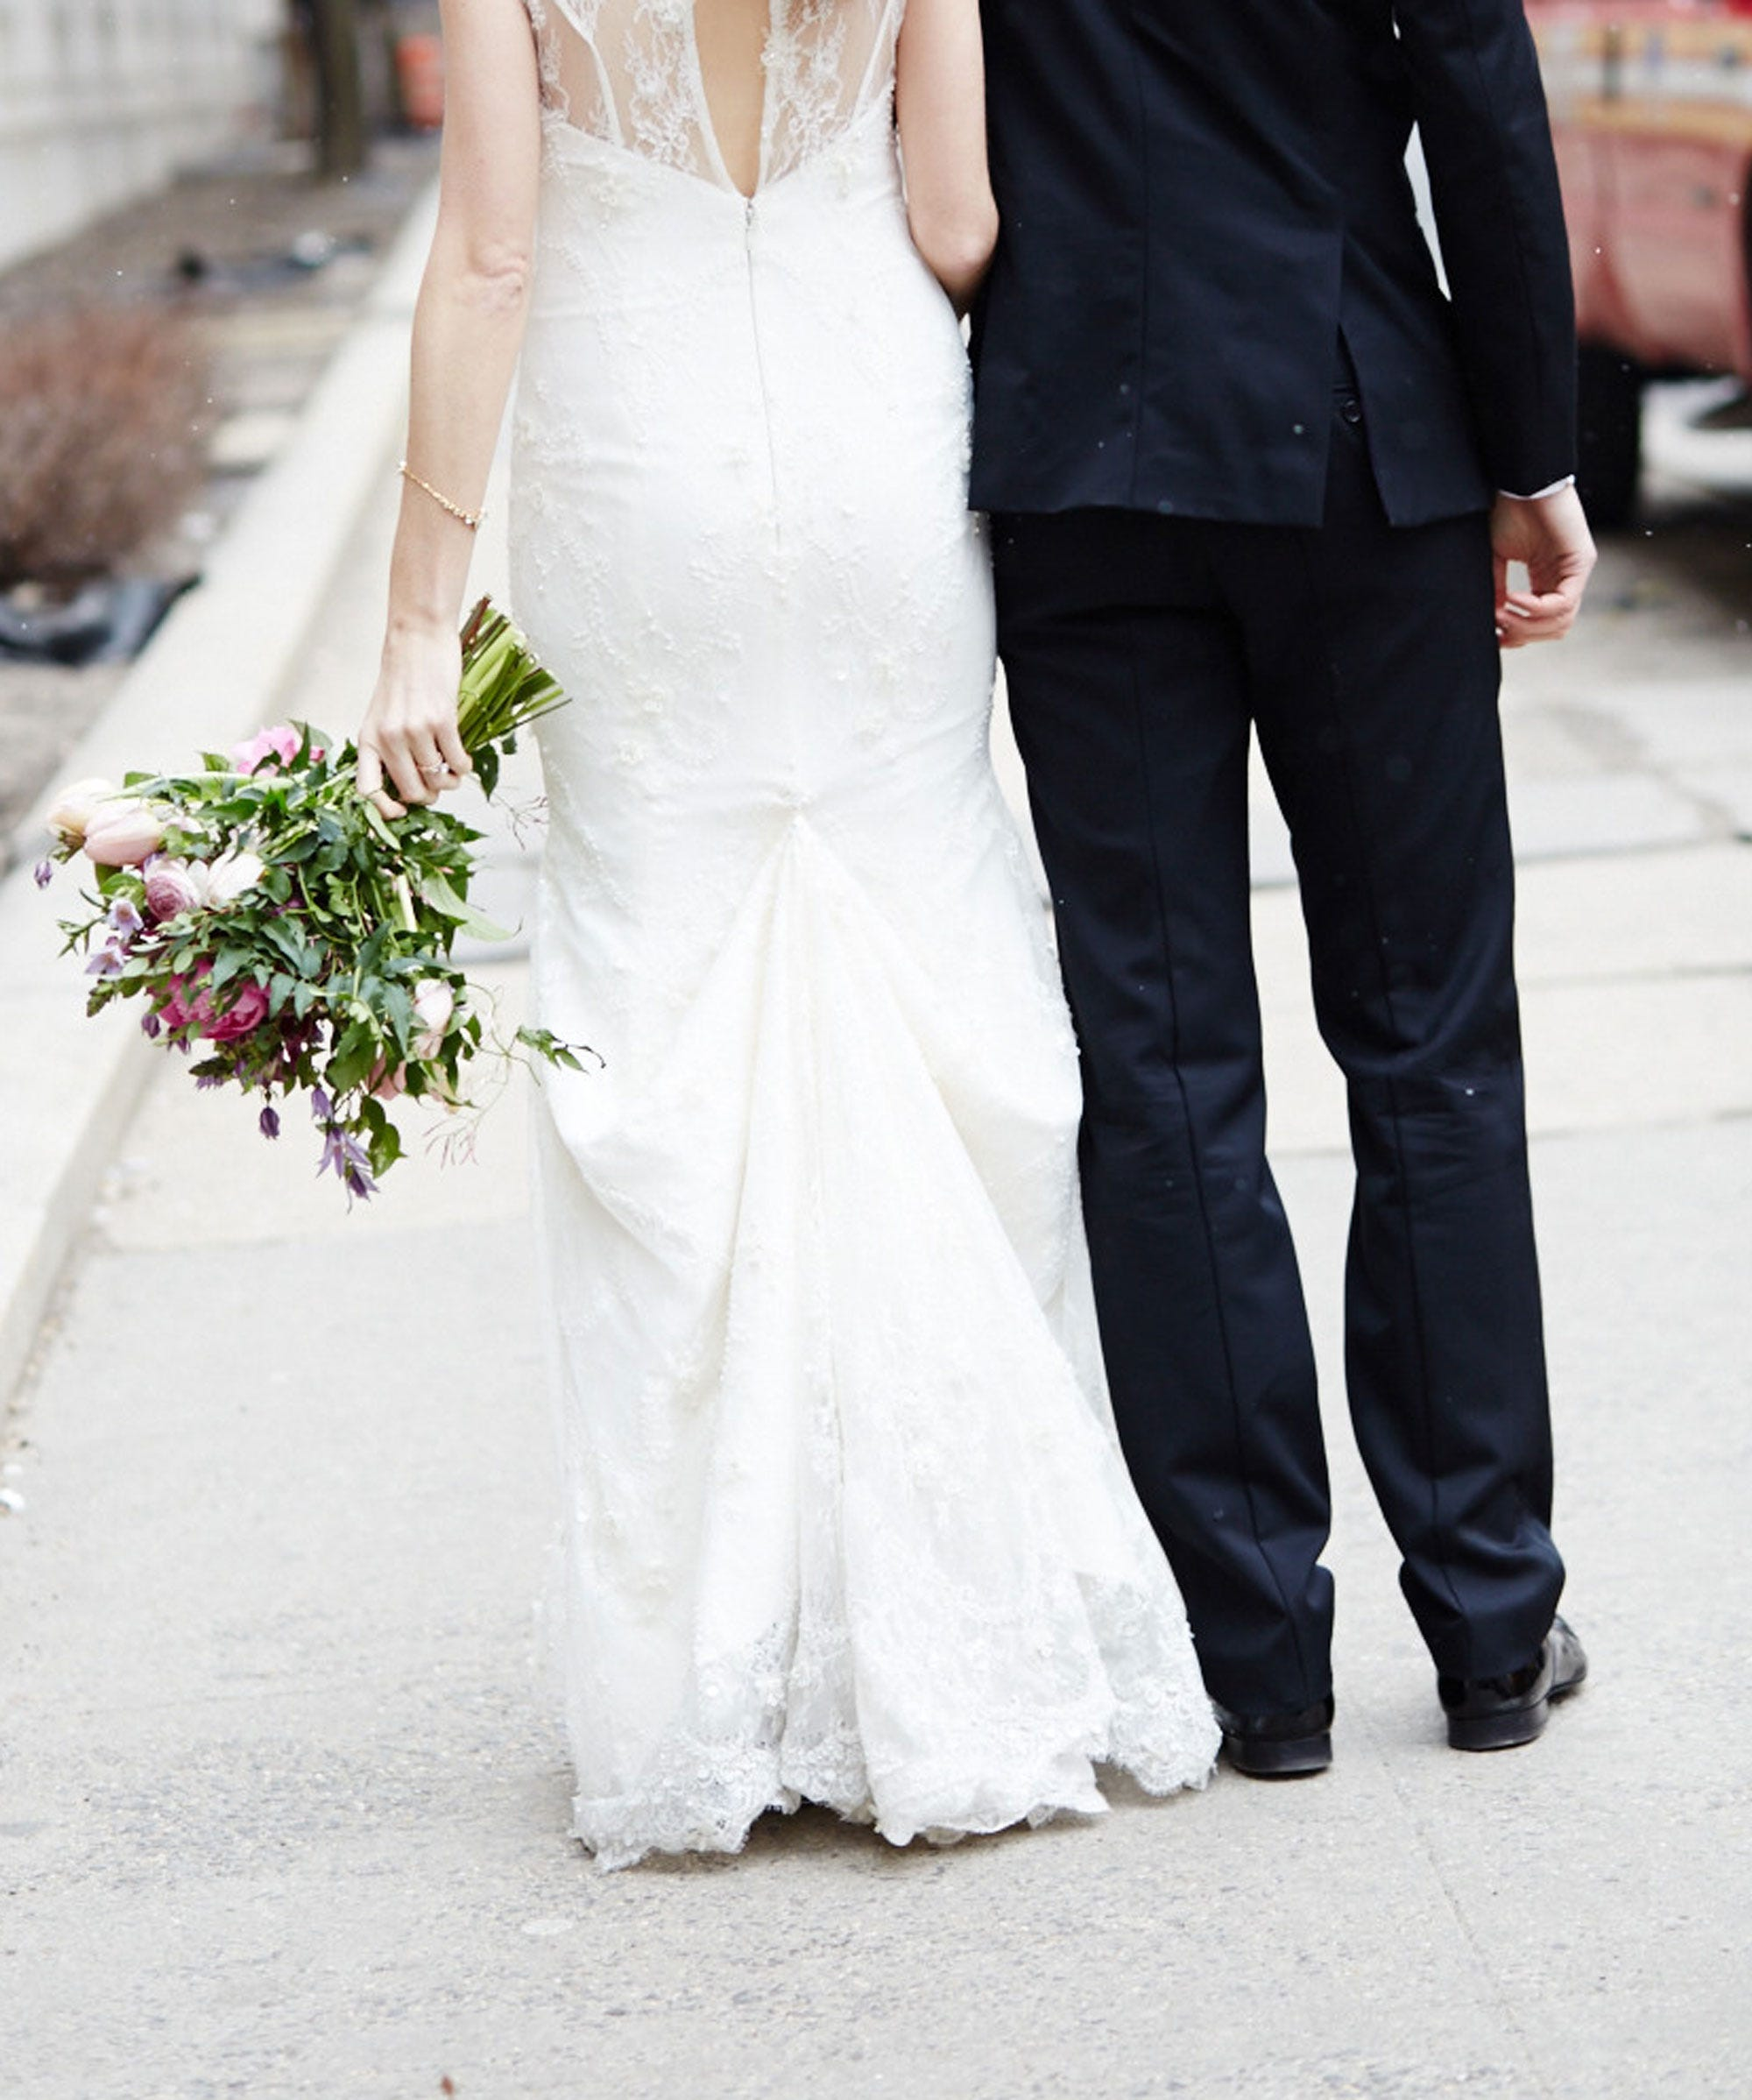 Average Cost Of Wedding Dress.Wedding Cost 2016 Wedding Budget Guide